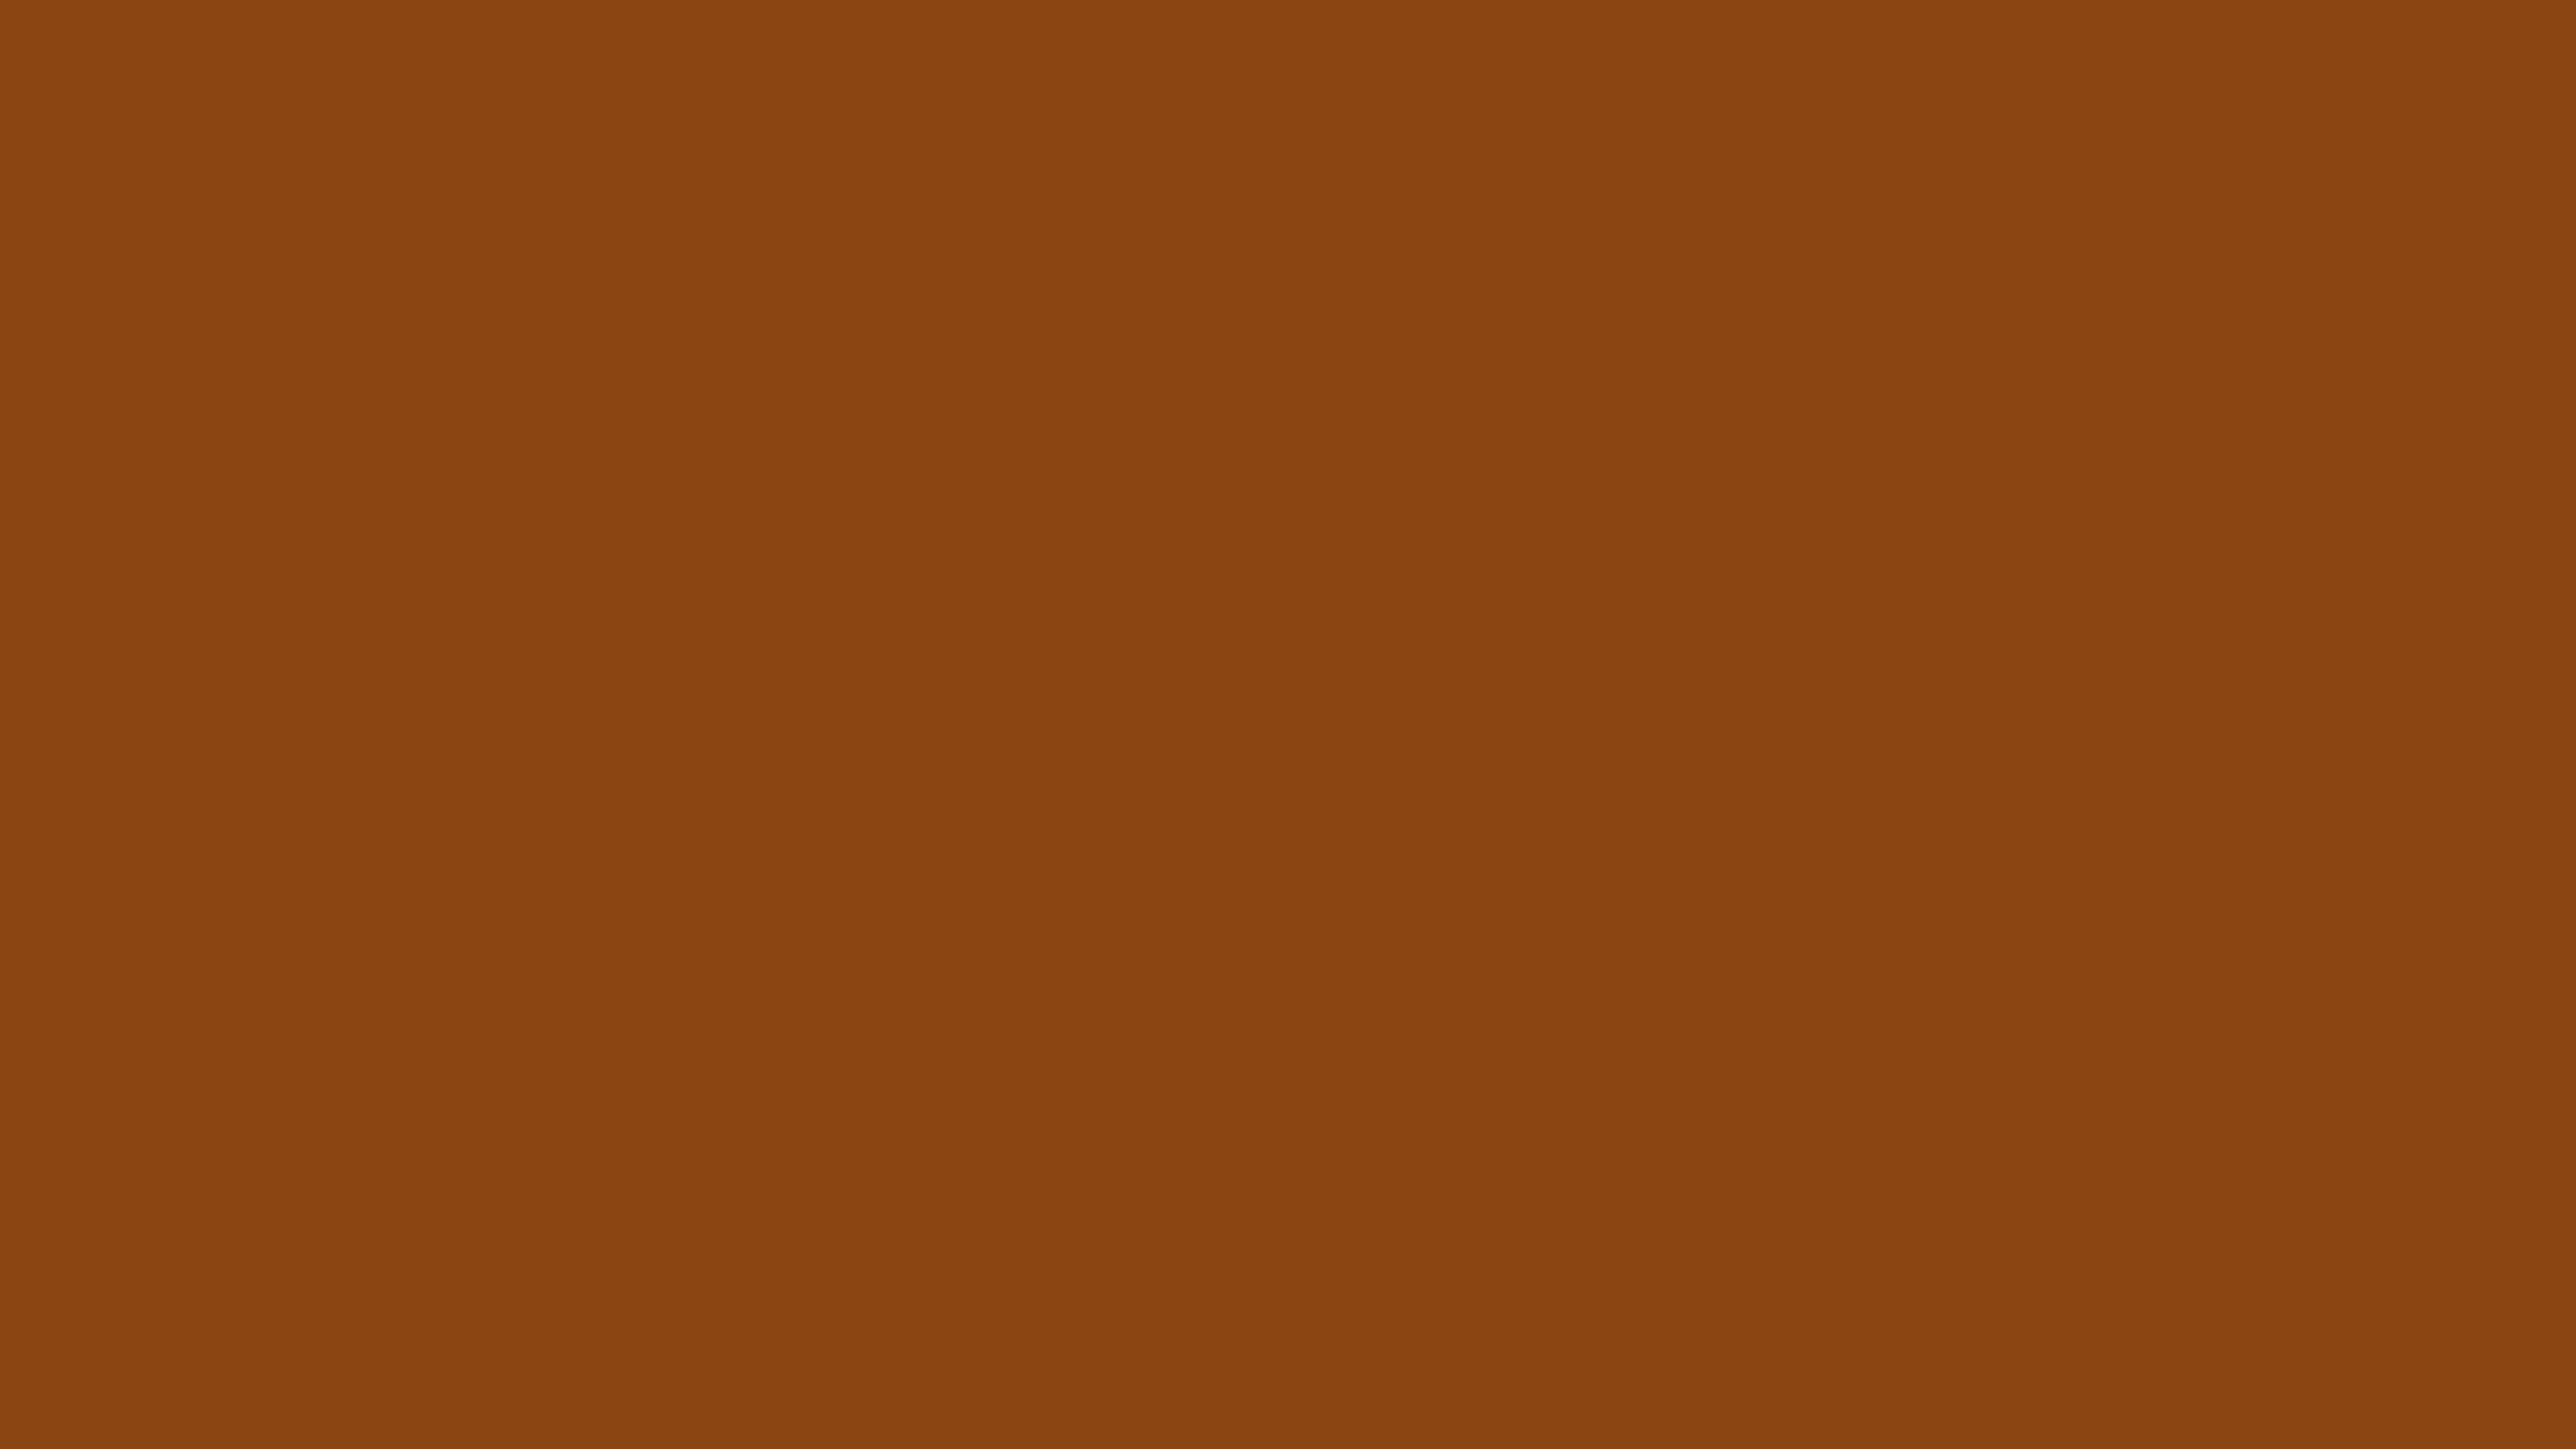 4096x2304 Saddle Brown Solid Color Background